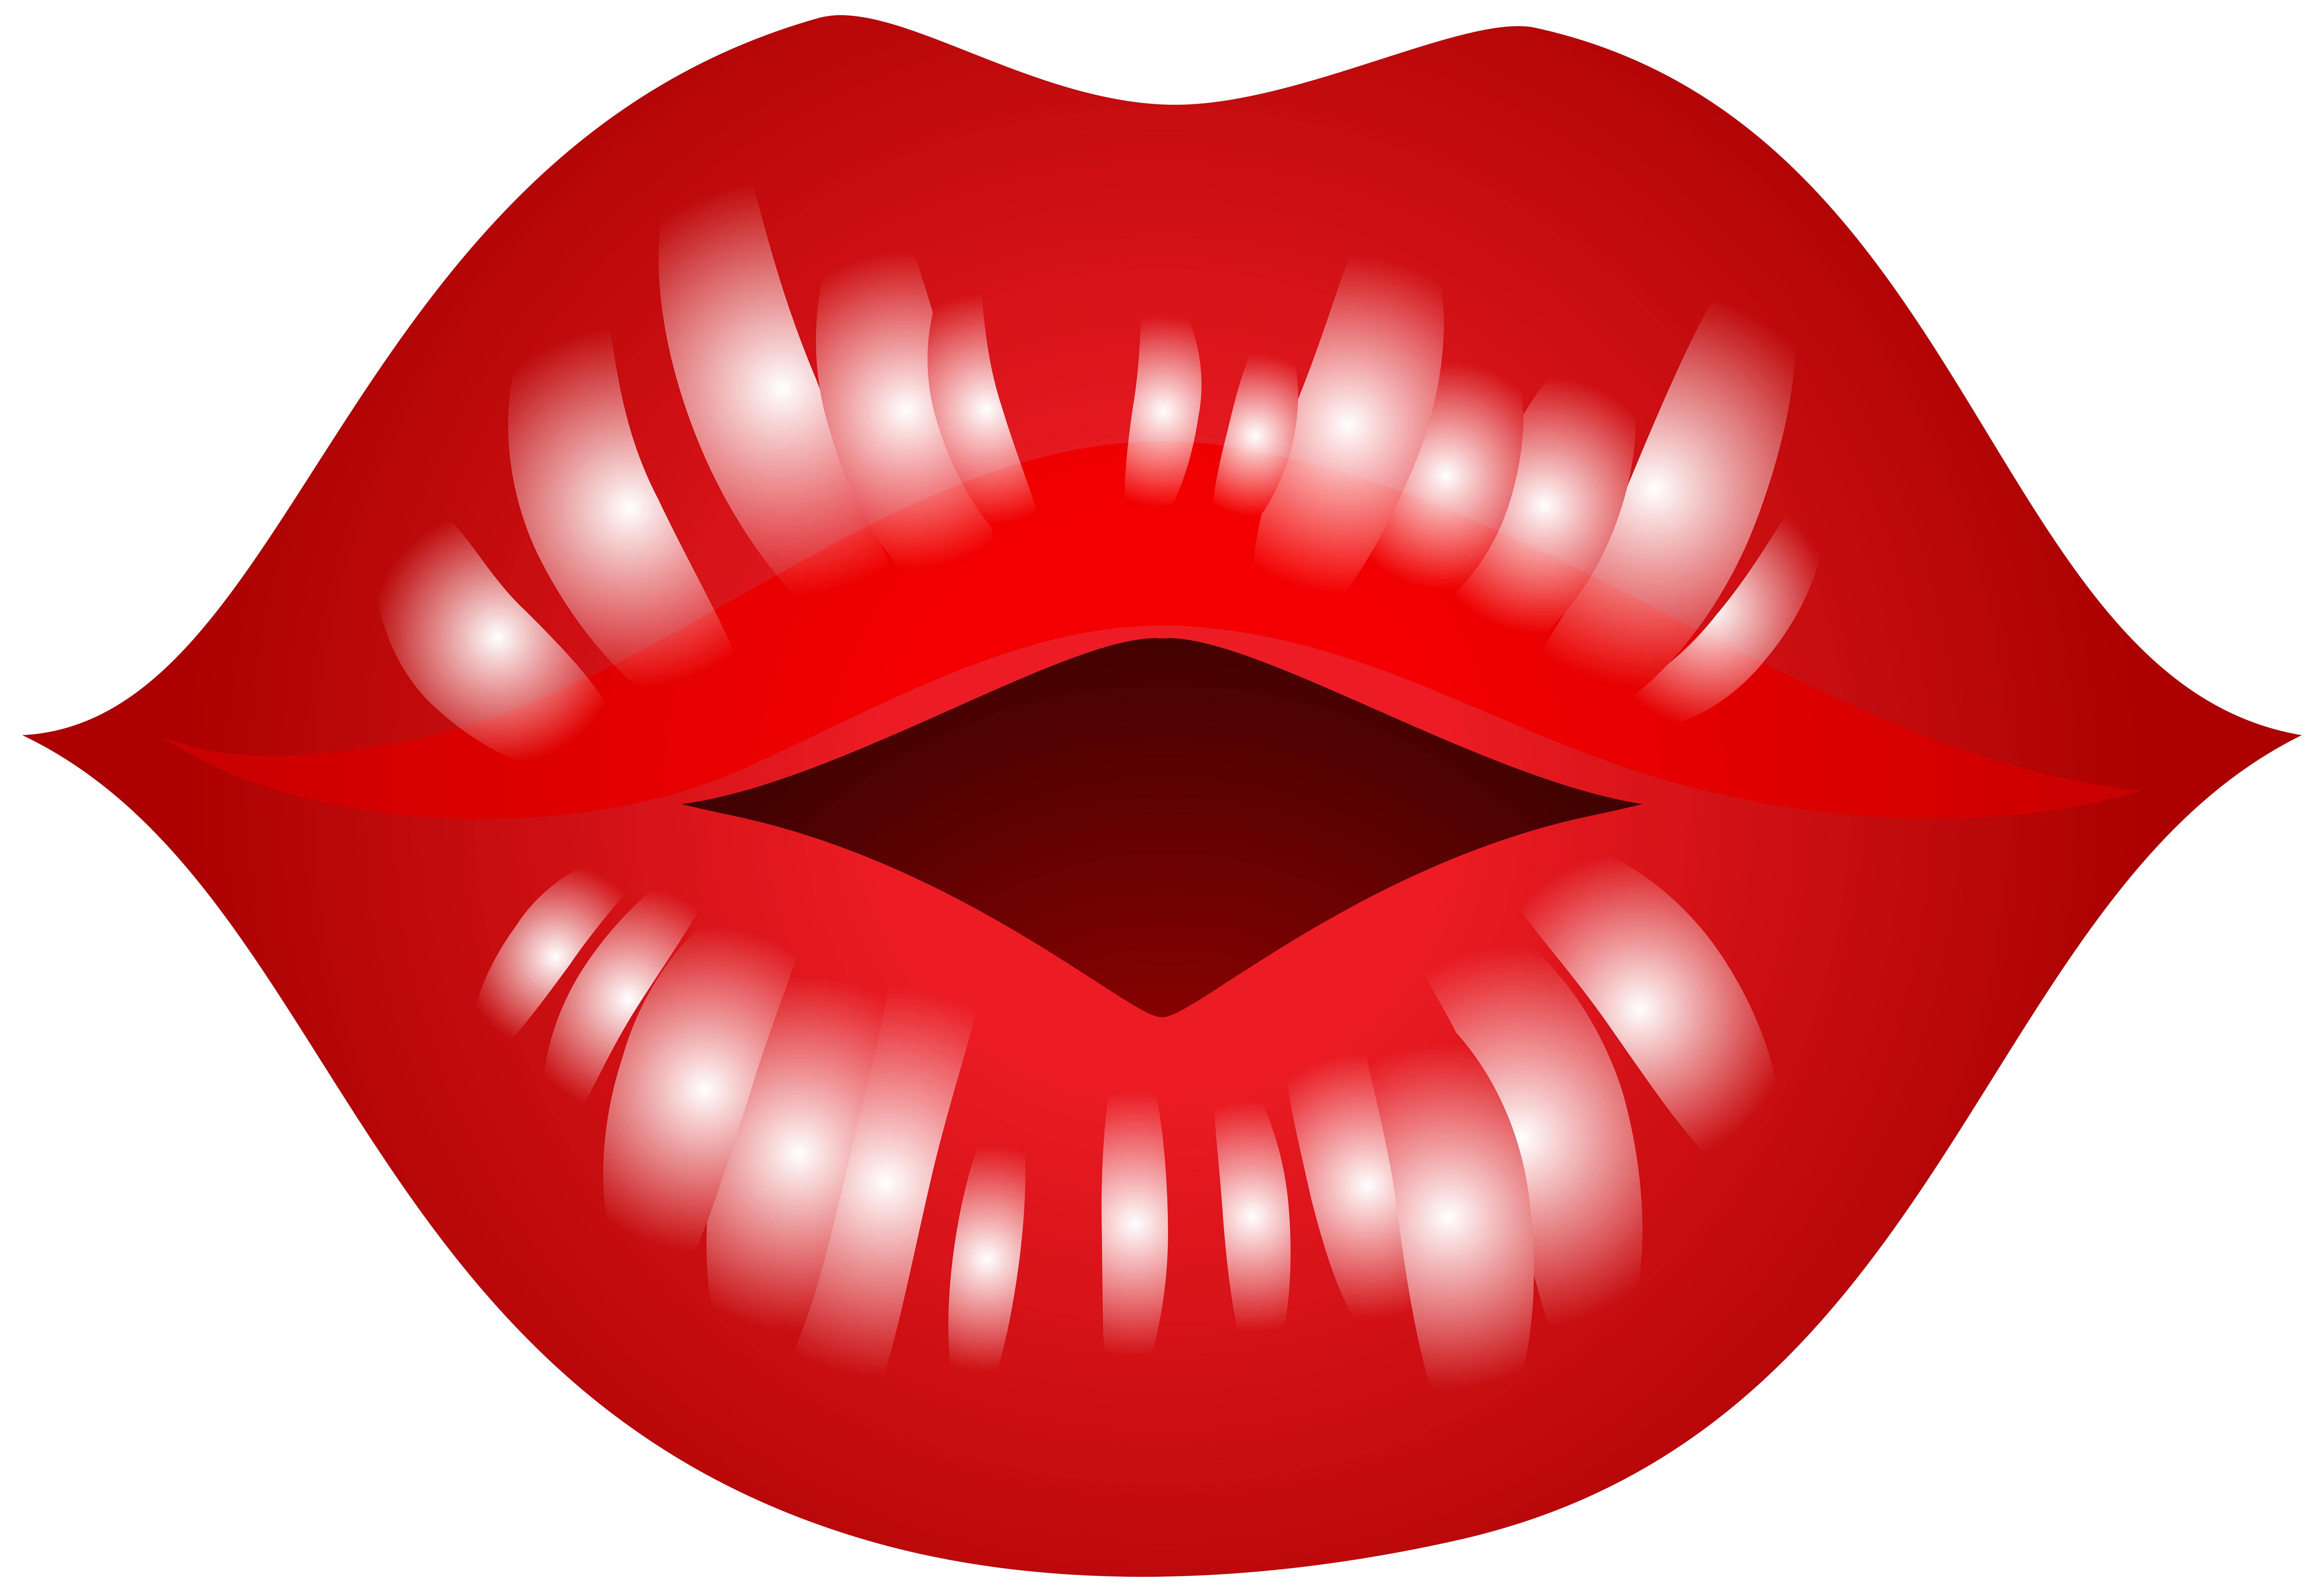 Kiss clipart #4, Download drawings